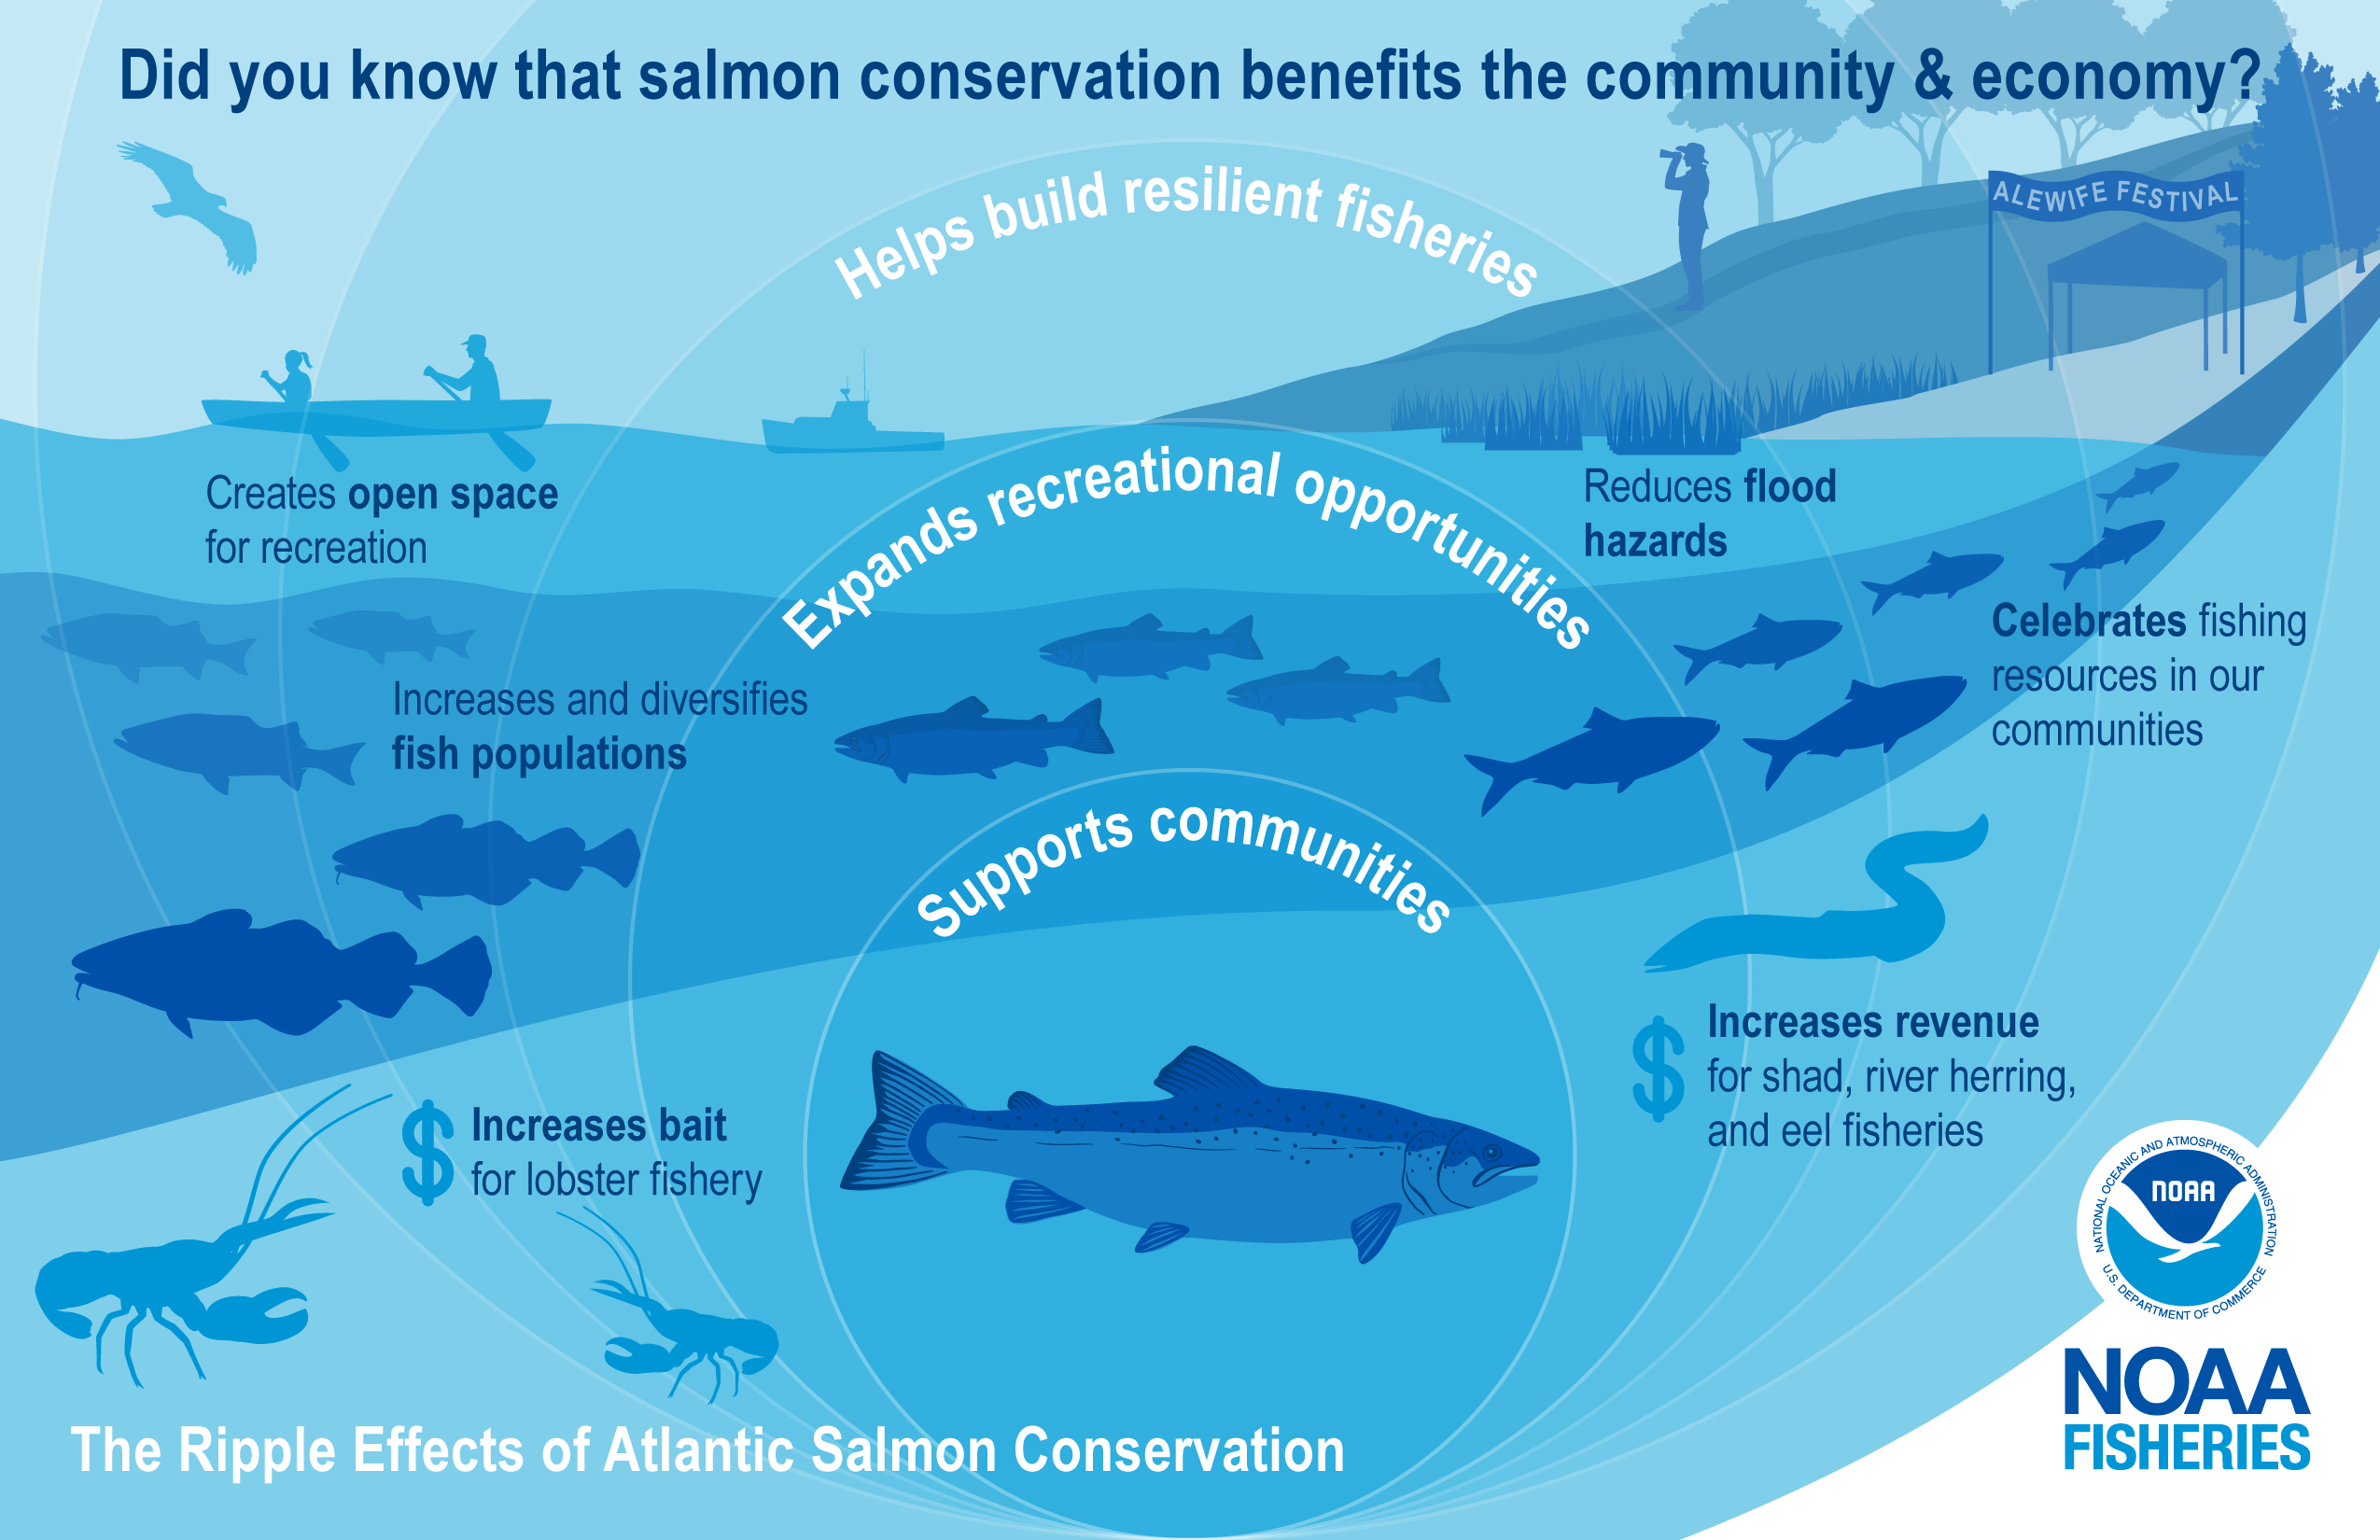 """This illustration is color-coded in shades of blue and shows the benefits of salmon conservation for the community and economy. It highlights examples of the """"ripple effects"""" with an illustration of expanding circles over a river connected to the ocean with an Atlantic salmon at the center. The salmon swims upstream to the right surrounded by a restored coastline represented by smaller salmon, schooling river herring, Atlantic cod, striped bass, lobsters, and an American eel. In the background is a lobster"""